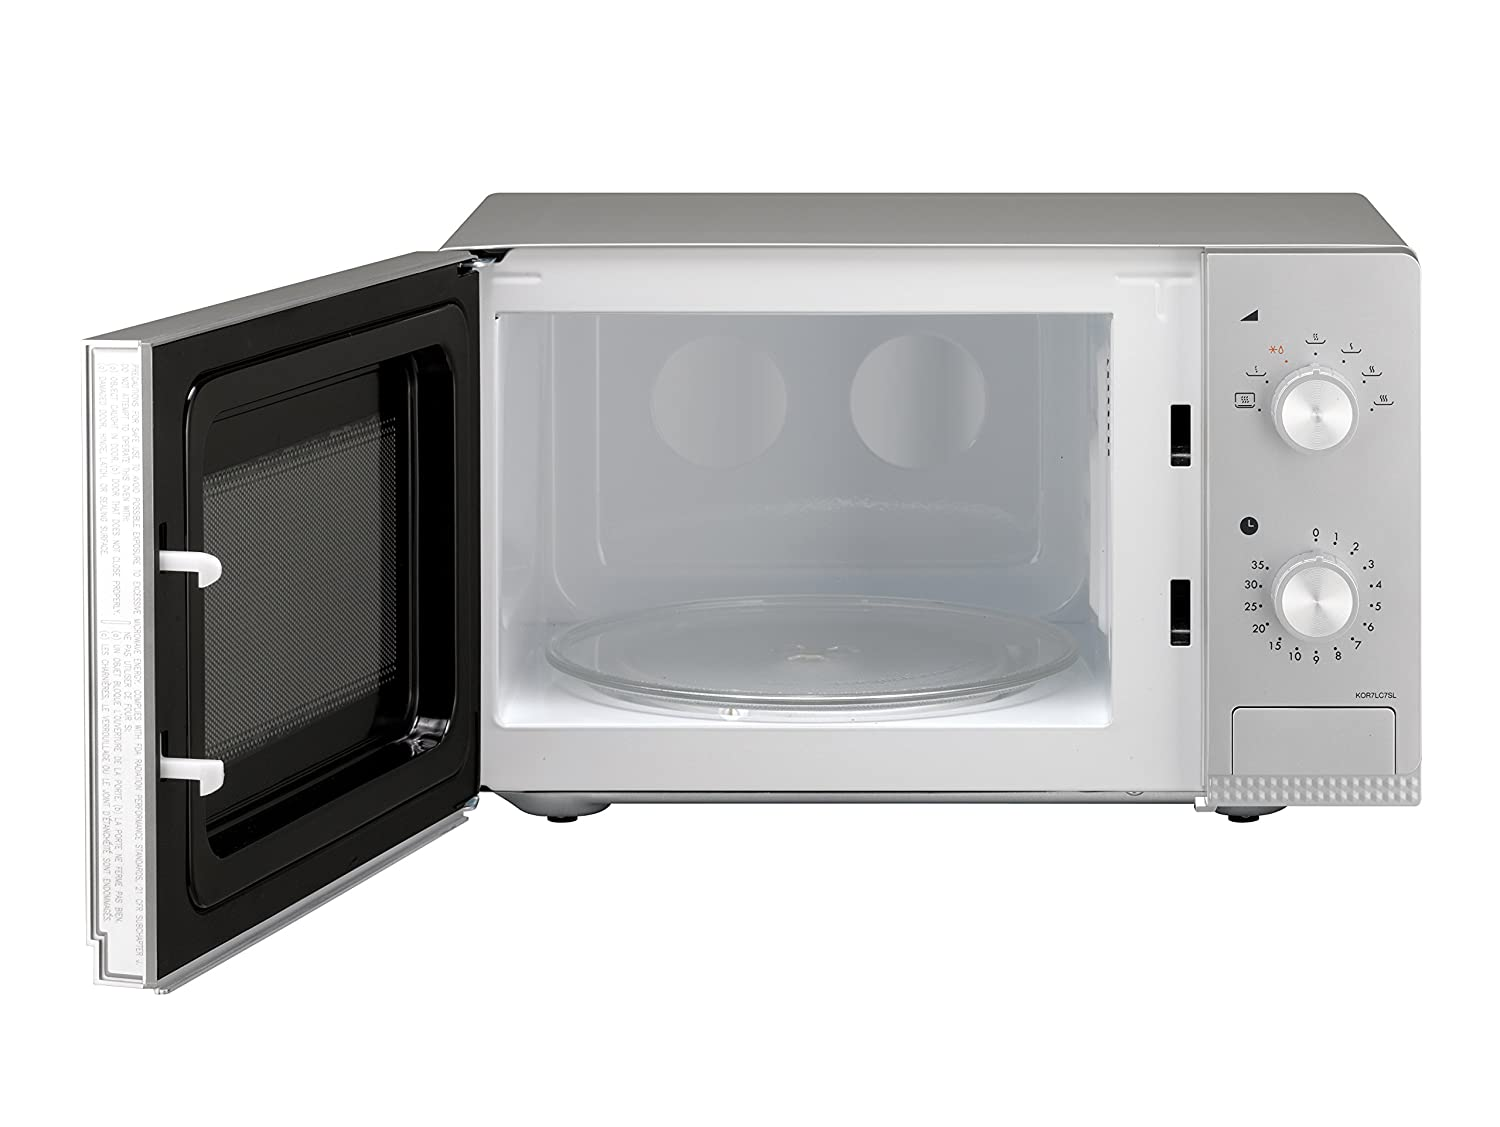 Daewoo KOR7LC7SL Manual Microwave Oven, 20 Litre, Silver: Amazon.co.uk:  Kitchen & Home